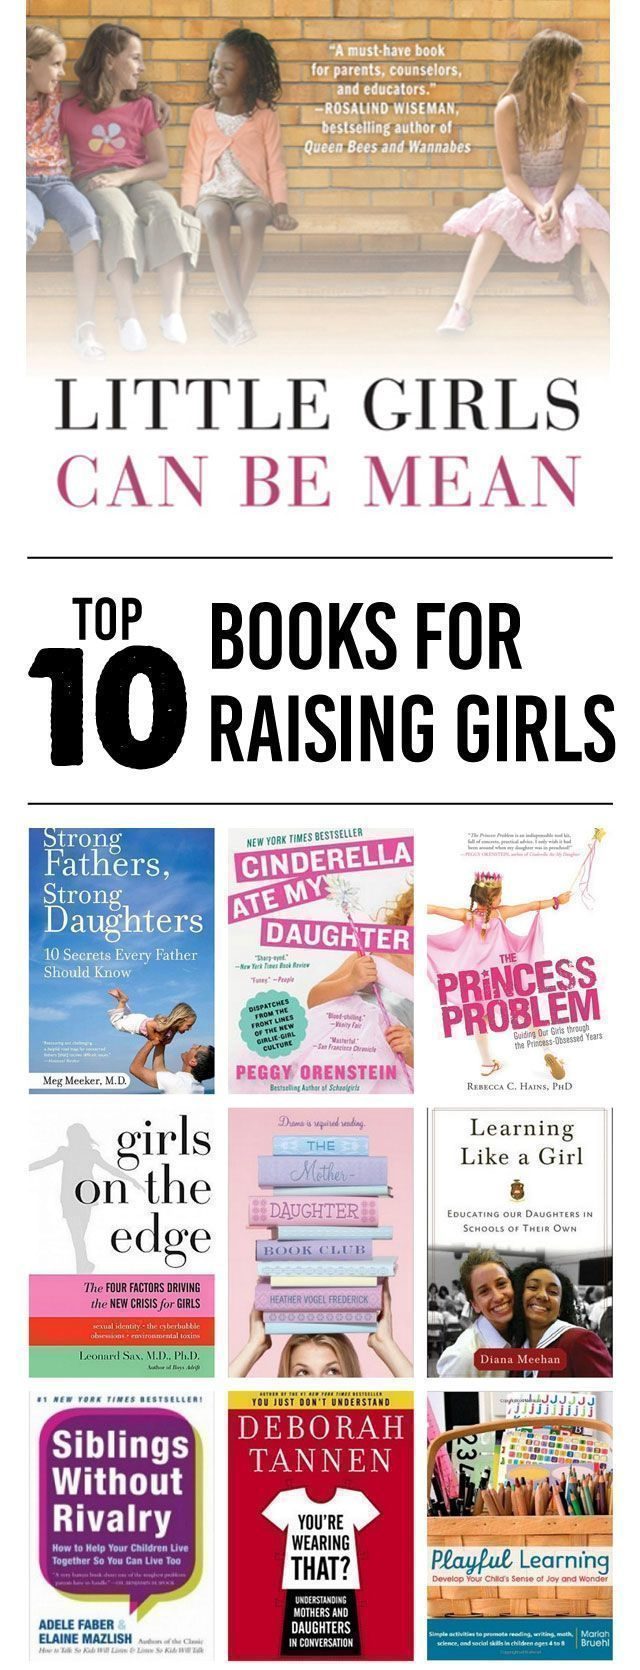 Next month, I'll be having my third child and my third girl. Which means that parenting little girls is always on my mind. Whether you have a single daughter or a whole slew of them, these books are full of great advice on how to handle all manner of parenting issues, from education to bullying … #ParentingDaughters #ParentingSkills #parentinggirls